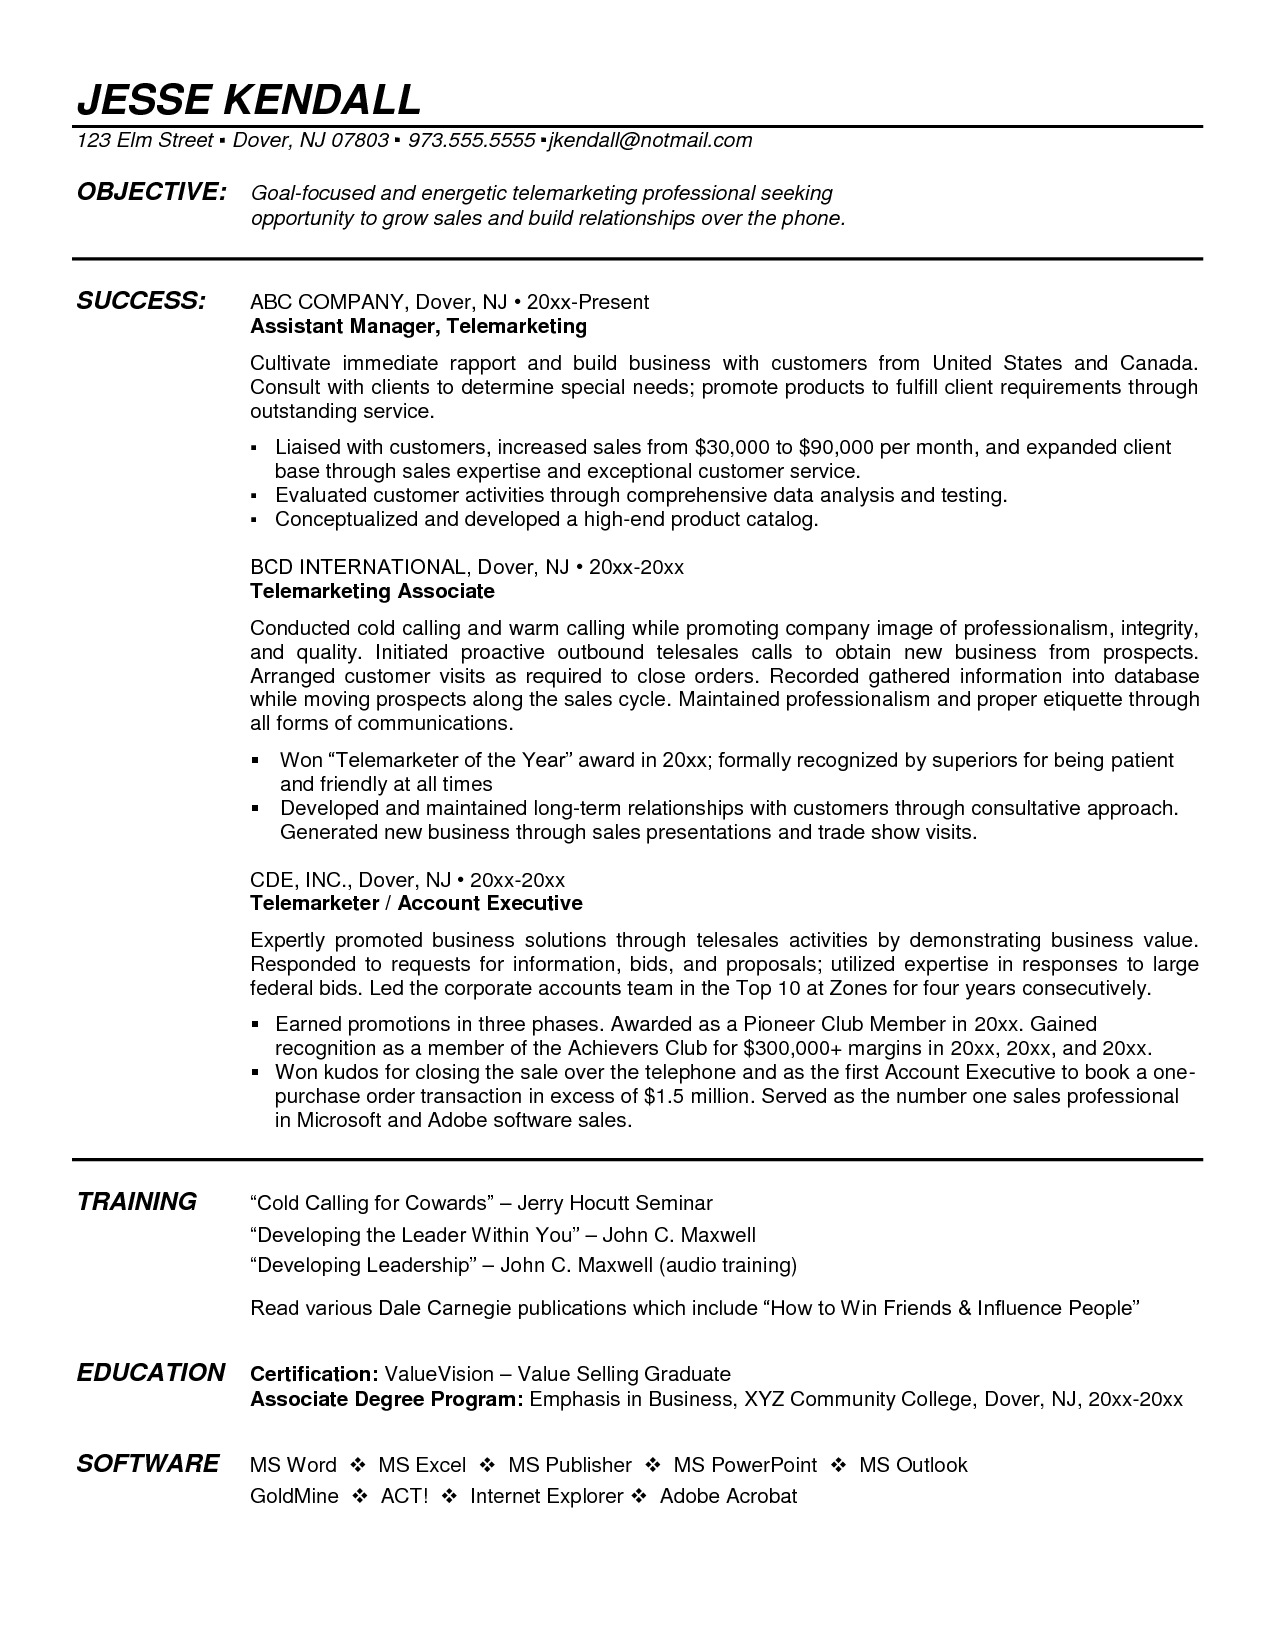 Federal Resume Examples Sales Resume Examples  Google Search  Resumes  Pinterest